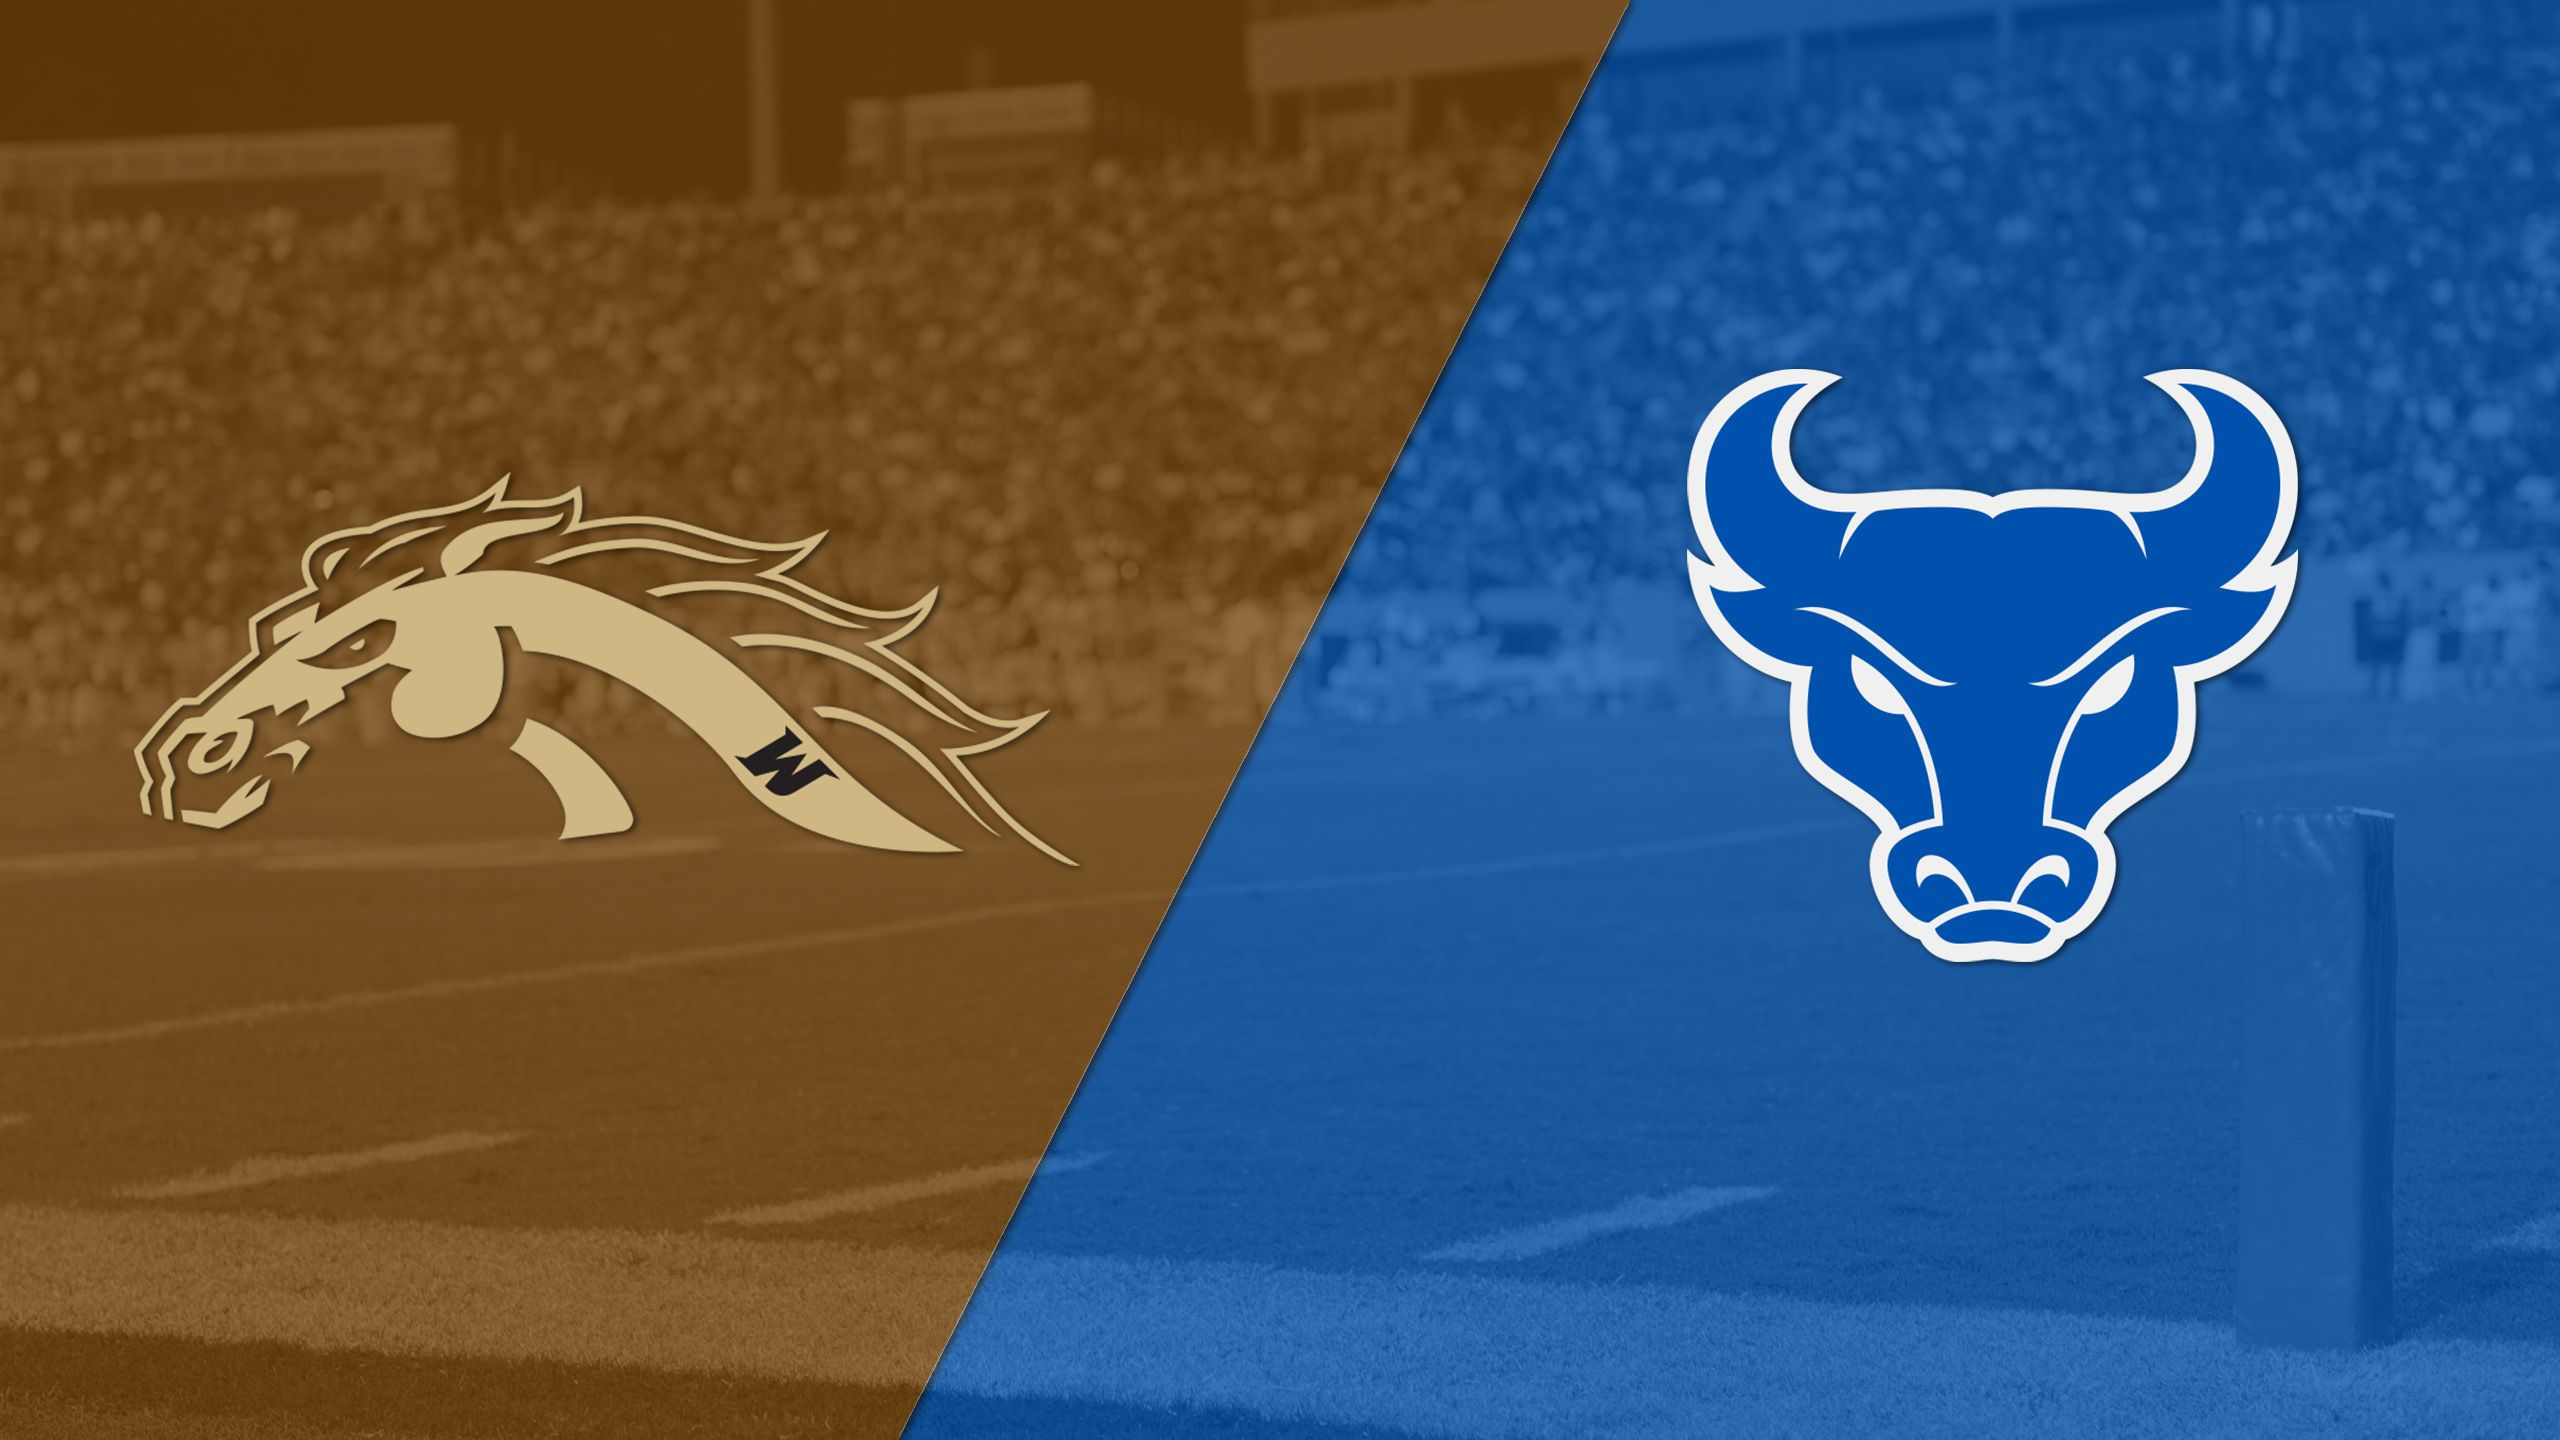 Western Michigan vs. Buffalo (re-air)